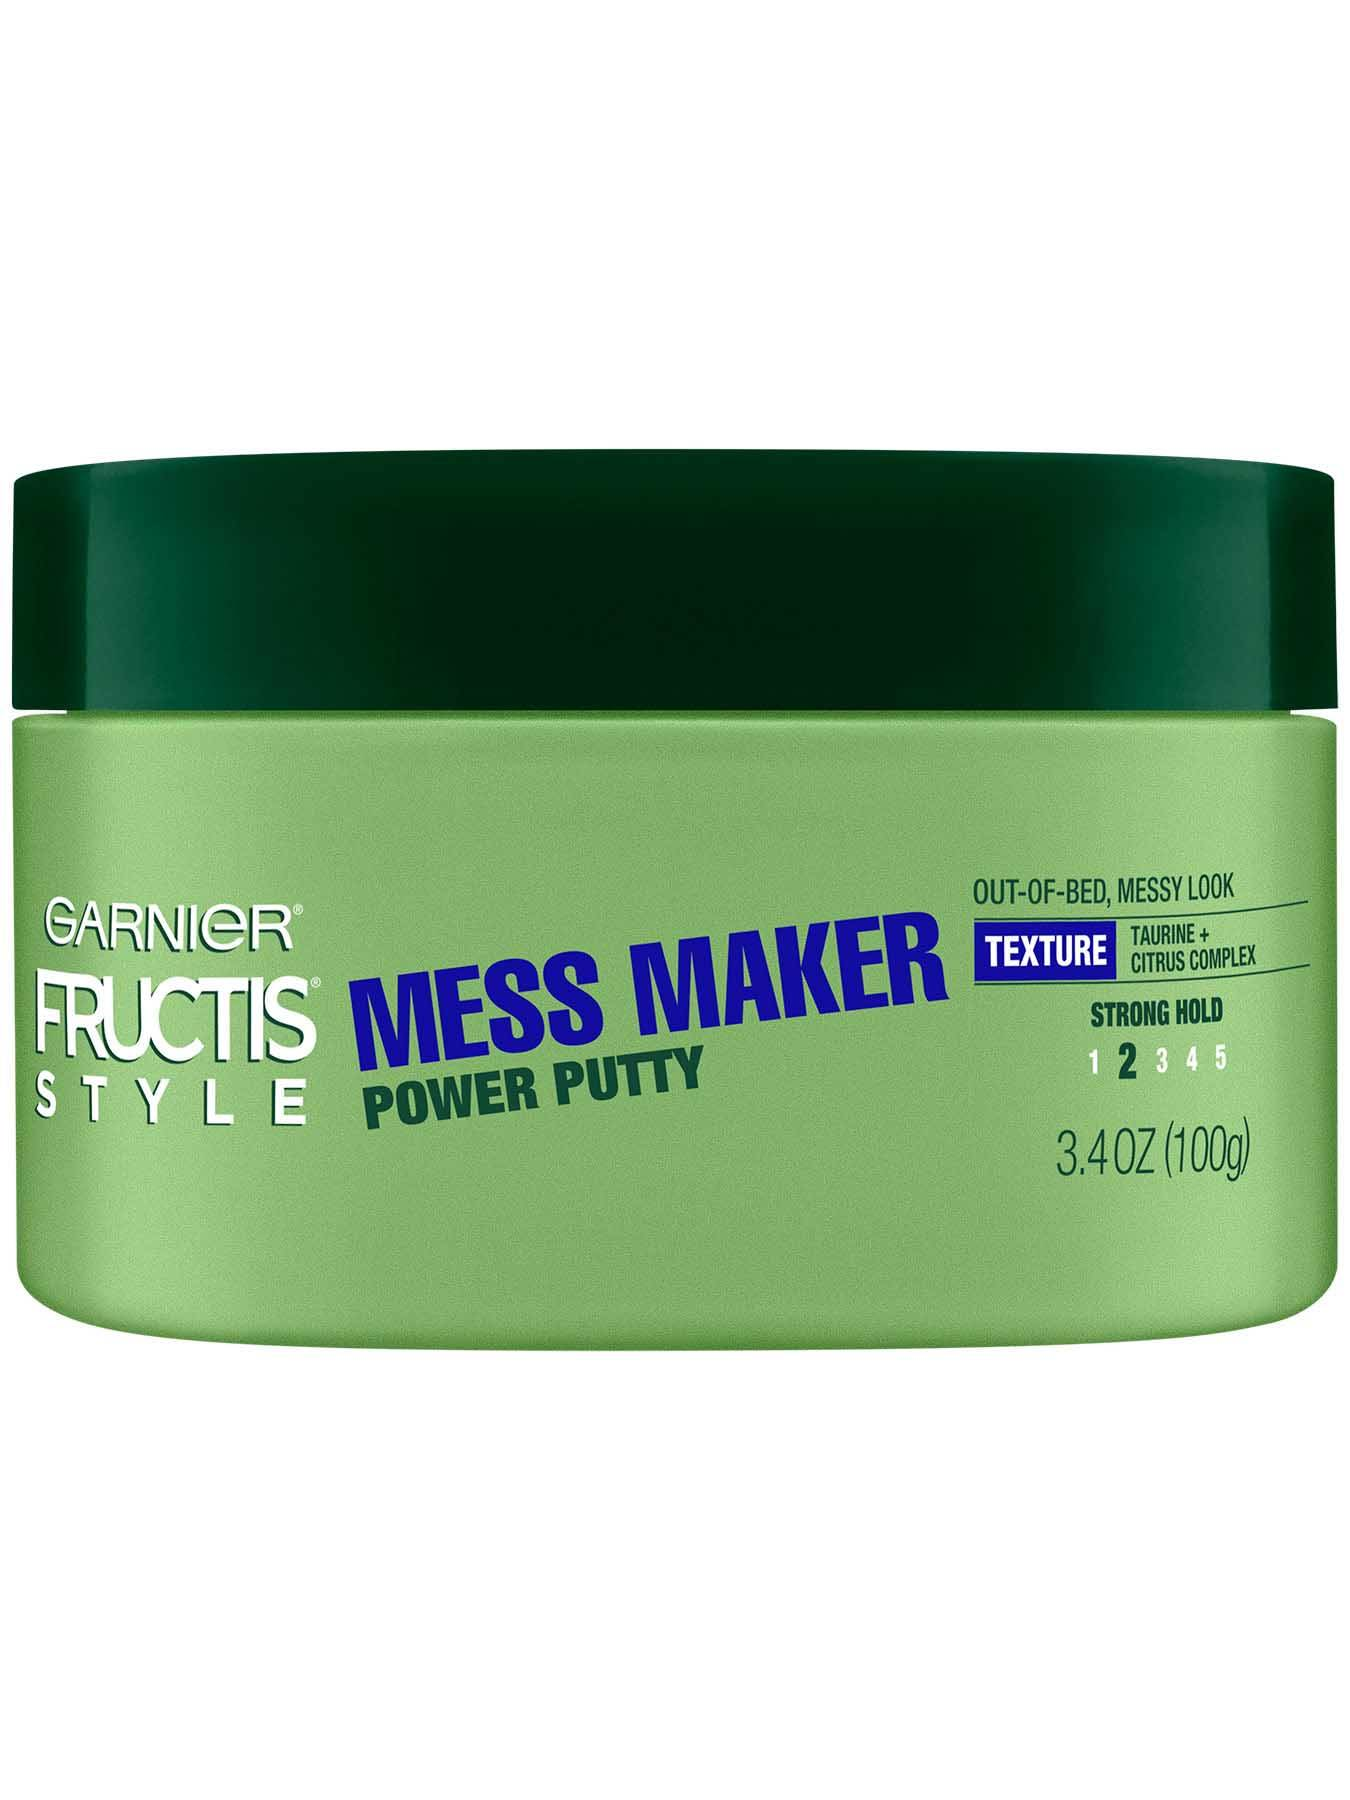 Front view of Power Putty Mess Maker.